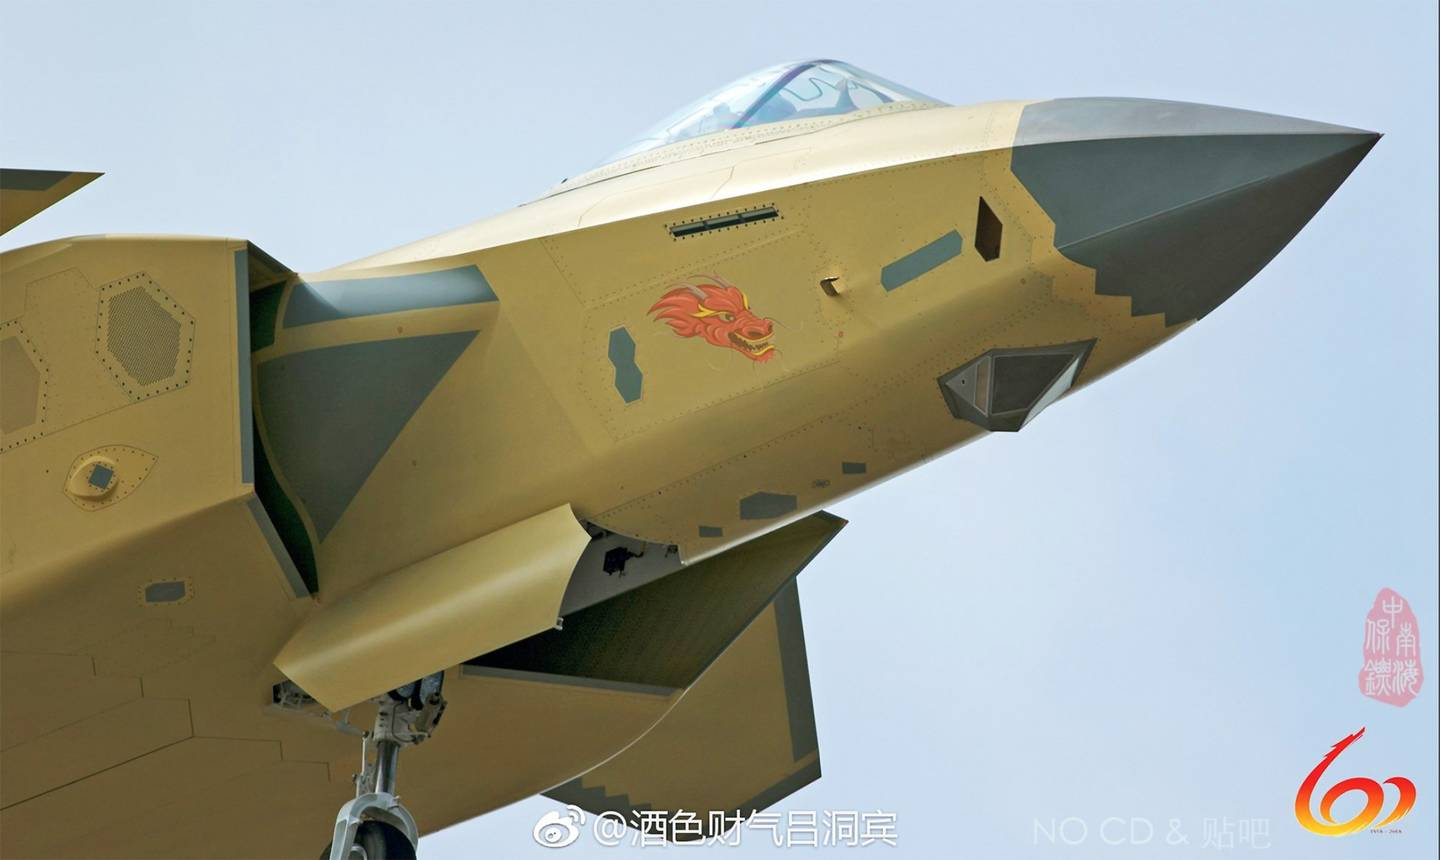 Latest Shots of Unpainted J-20 Stealth Fighter provide Insights about New Capability